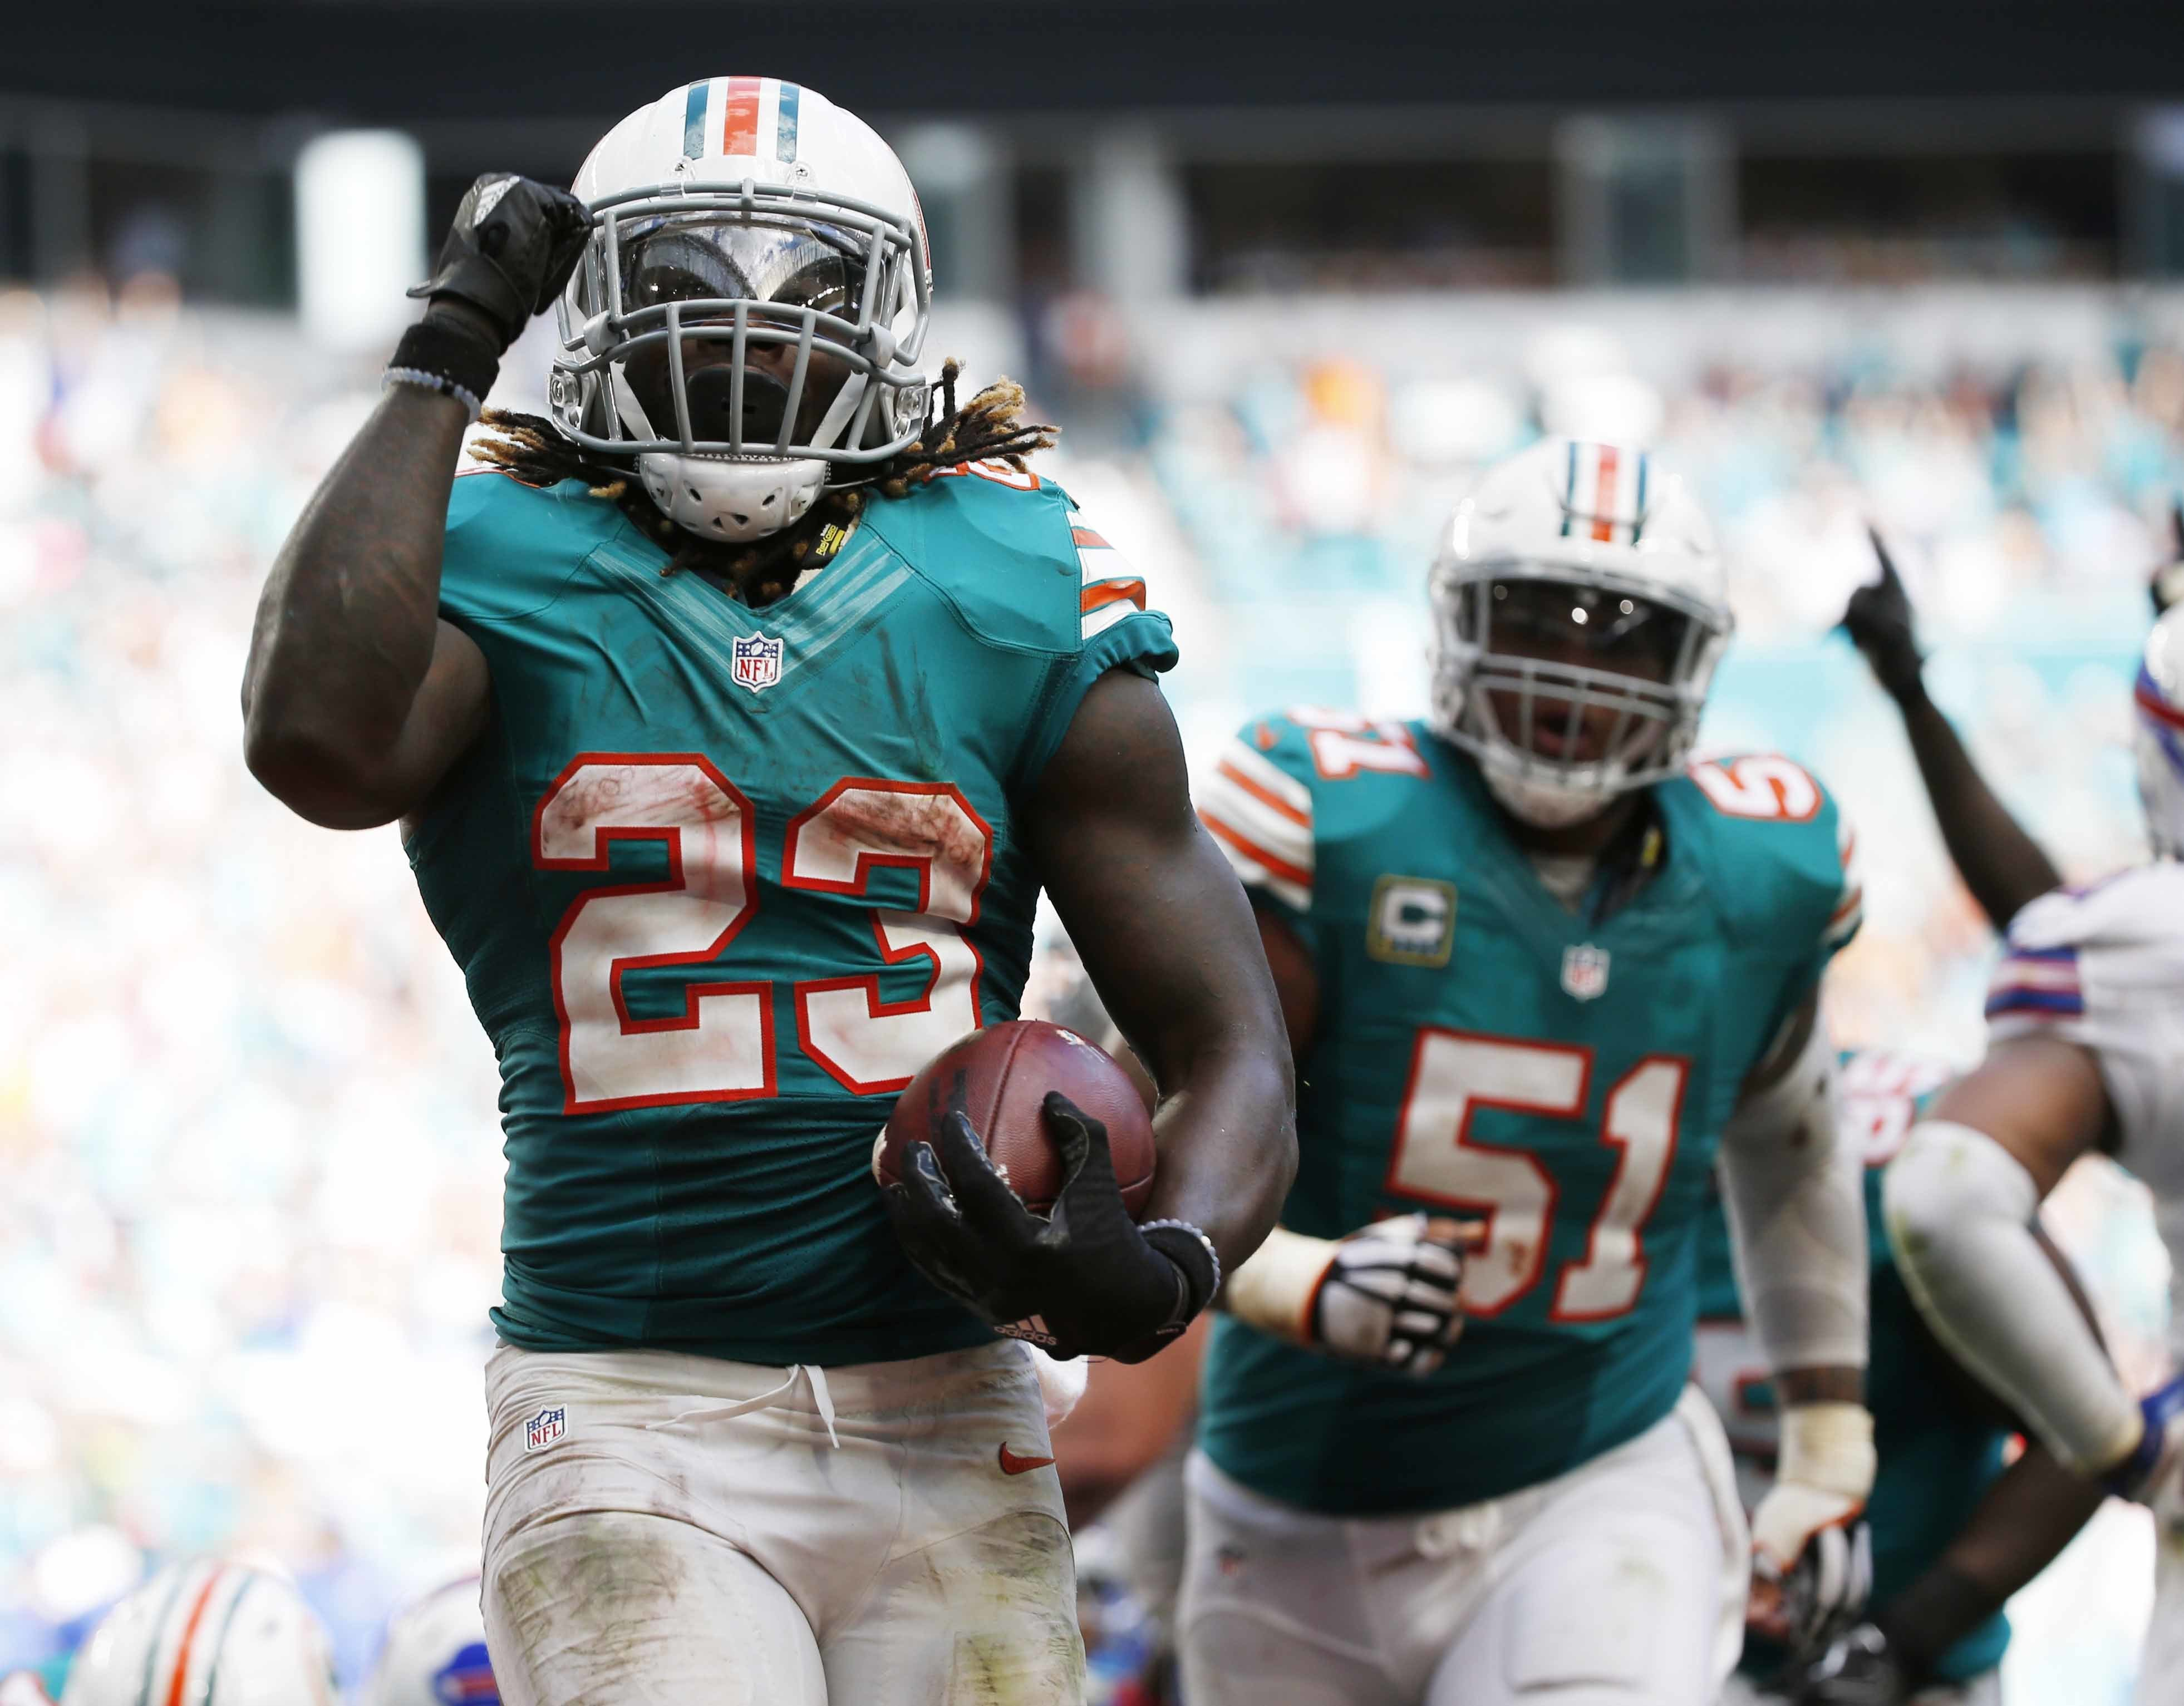 Miami Dolphins running back Jay Ajayi (23) celebrates a touchdown during the second half of an NFL football game against the Buffalo Bills, Sunday, Oct. 23, 2016, in Miami Gardens, Fla. To the right is Miami Dolphins center Mike Pouncey (51). (AP Photo/Wi